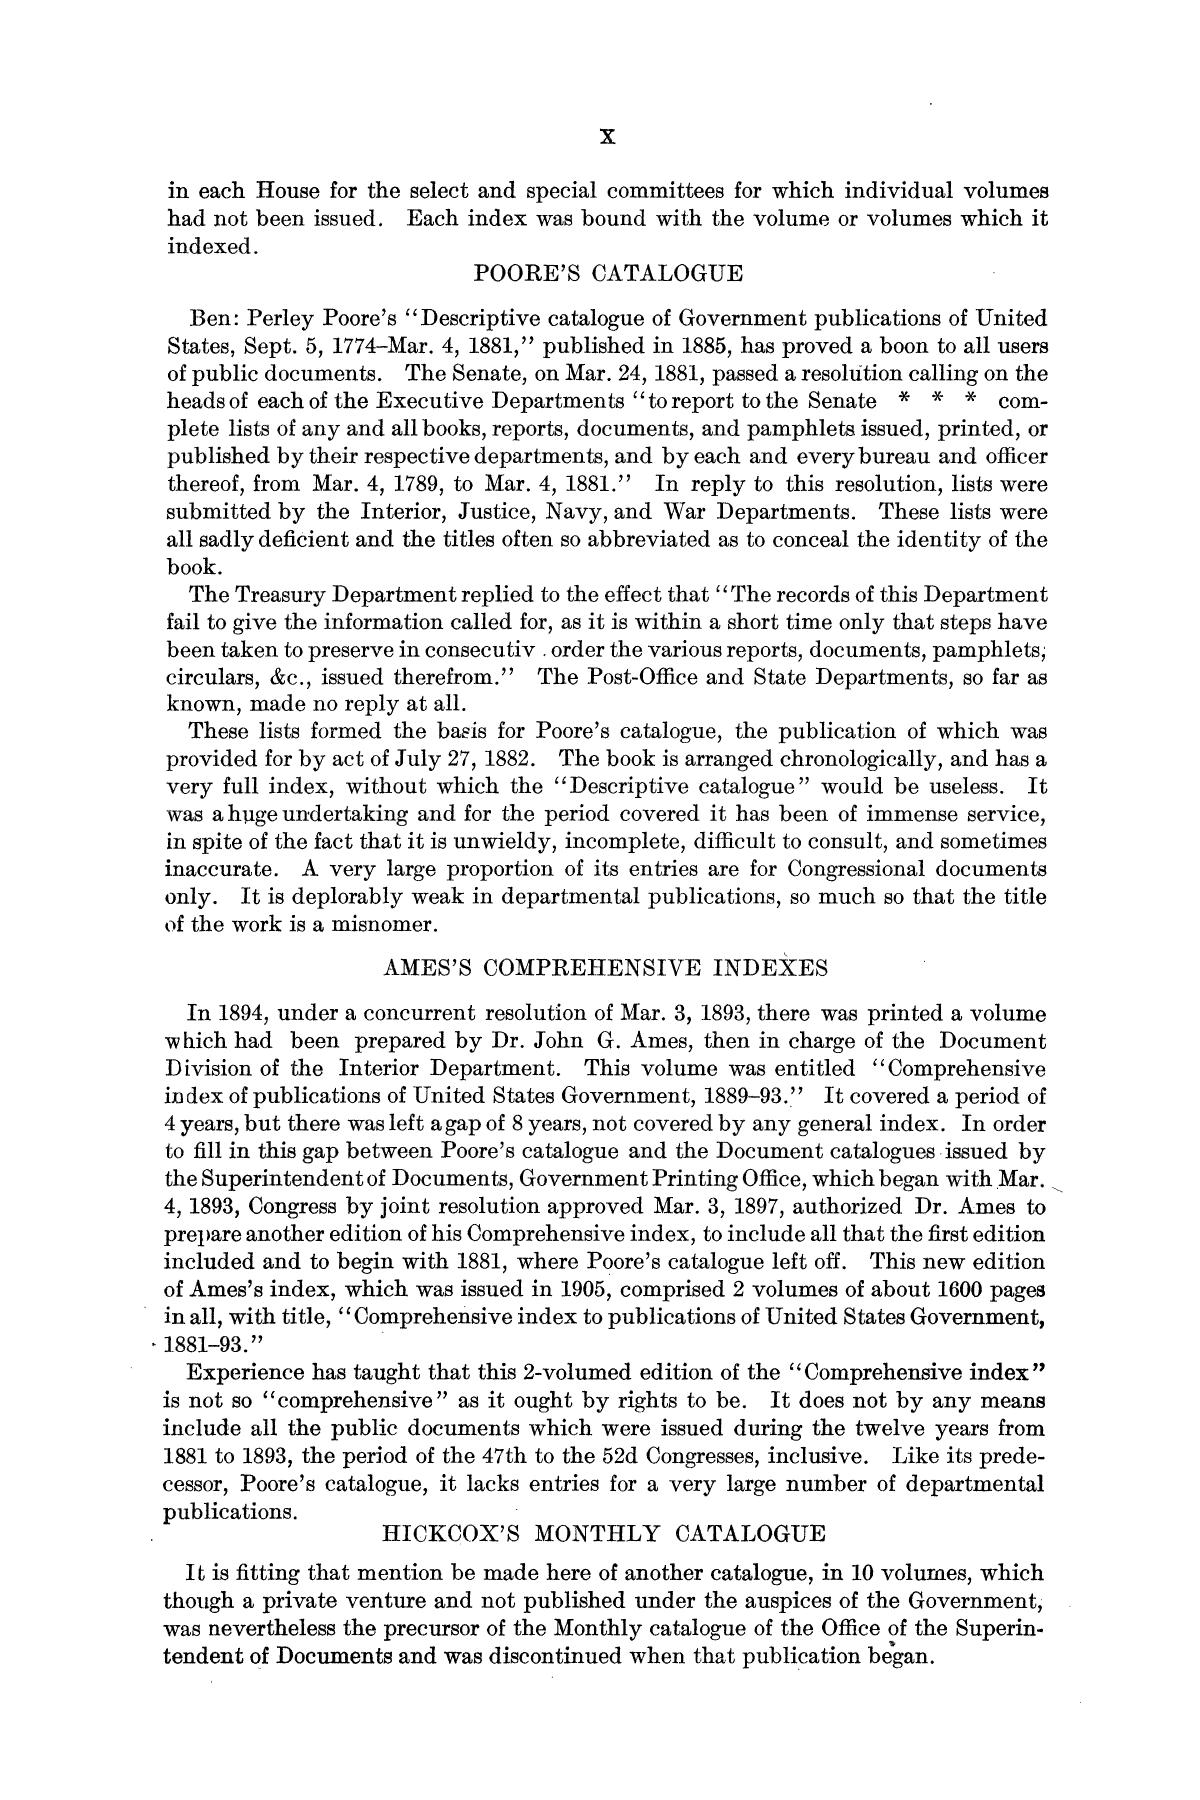 Checklist of United States Public Documents, 1789-1909, Third Edition Revised and Enlarged, Volume 1, Lists of Congressional and Departmental Publications                                                                                                      X